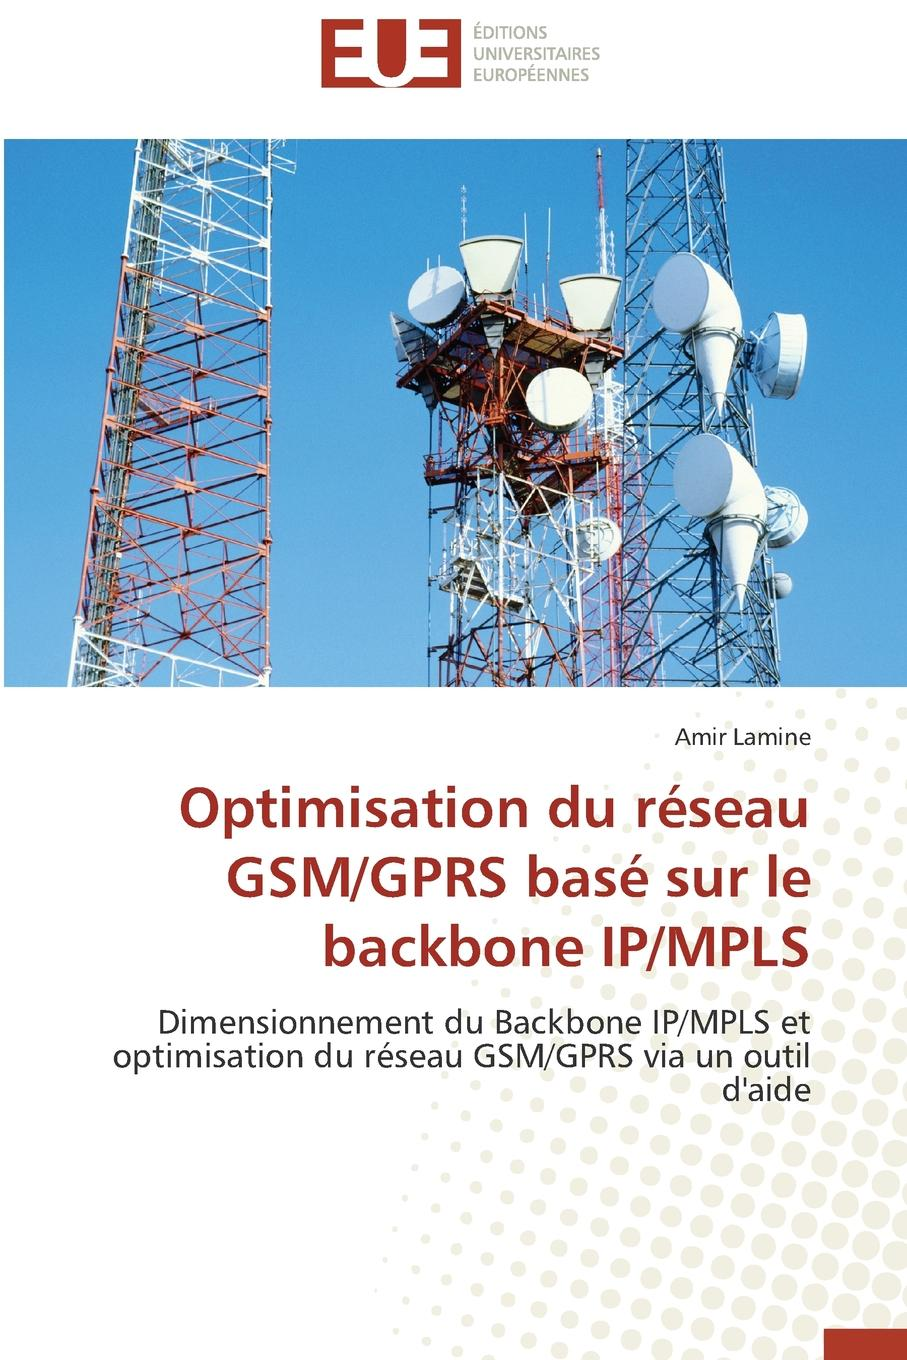 LAMINE-A Optimisation du reseau gsm/gprs base sur le backbone ip/mpls